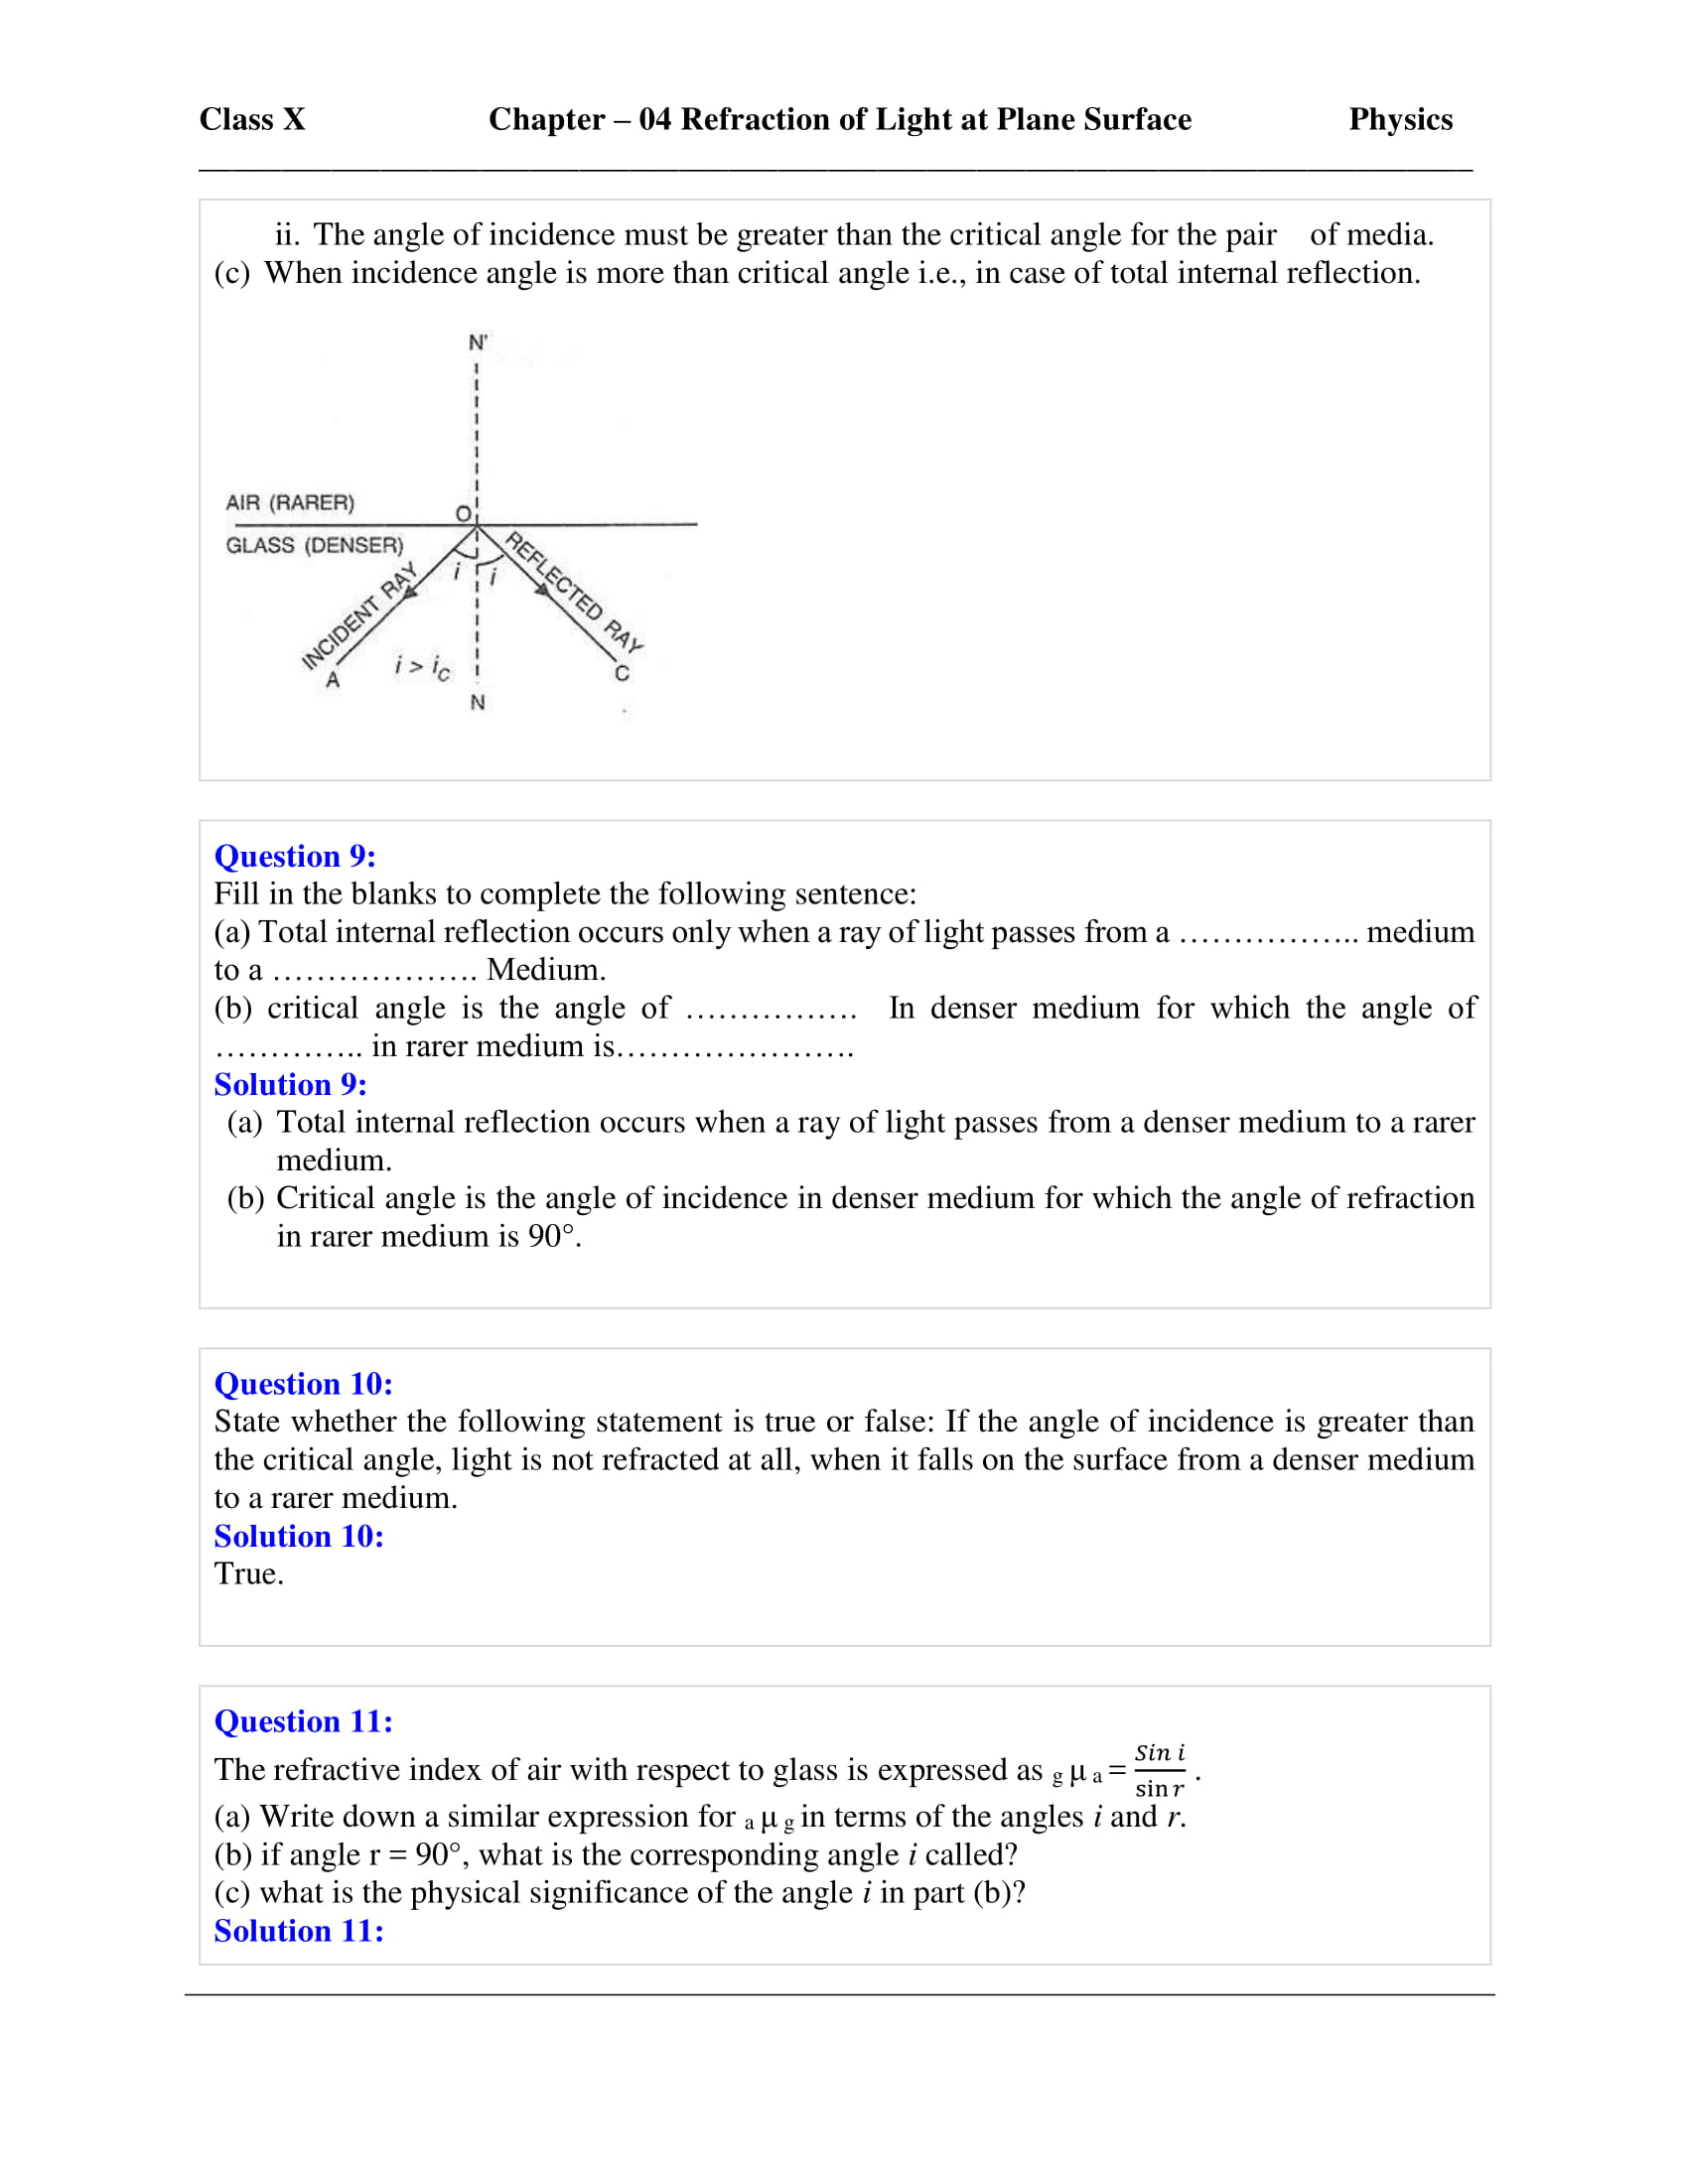 icse-selina-physics-solutions-class-10-chapter-4-refraction-of-light-at-plane-surfaces-30